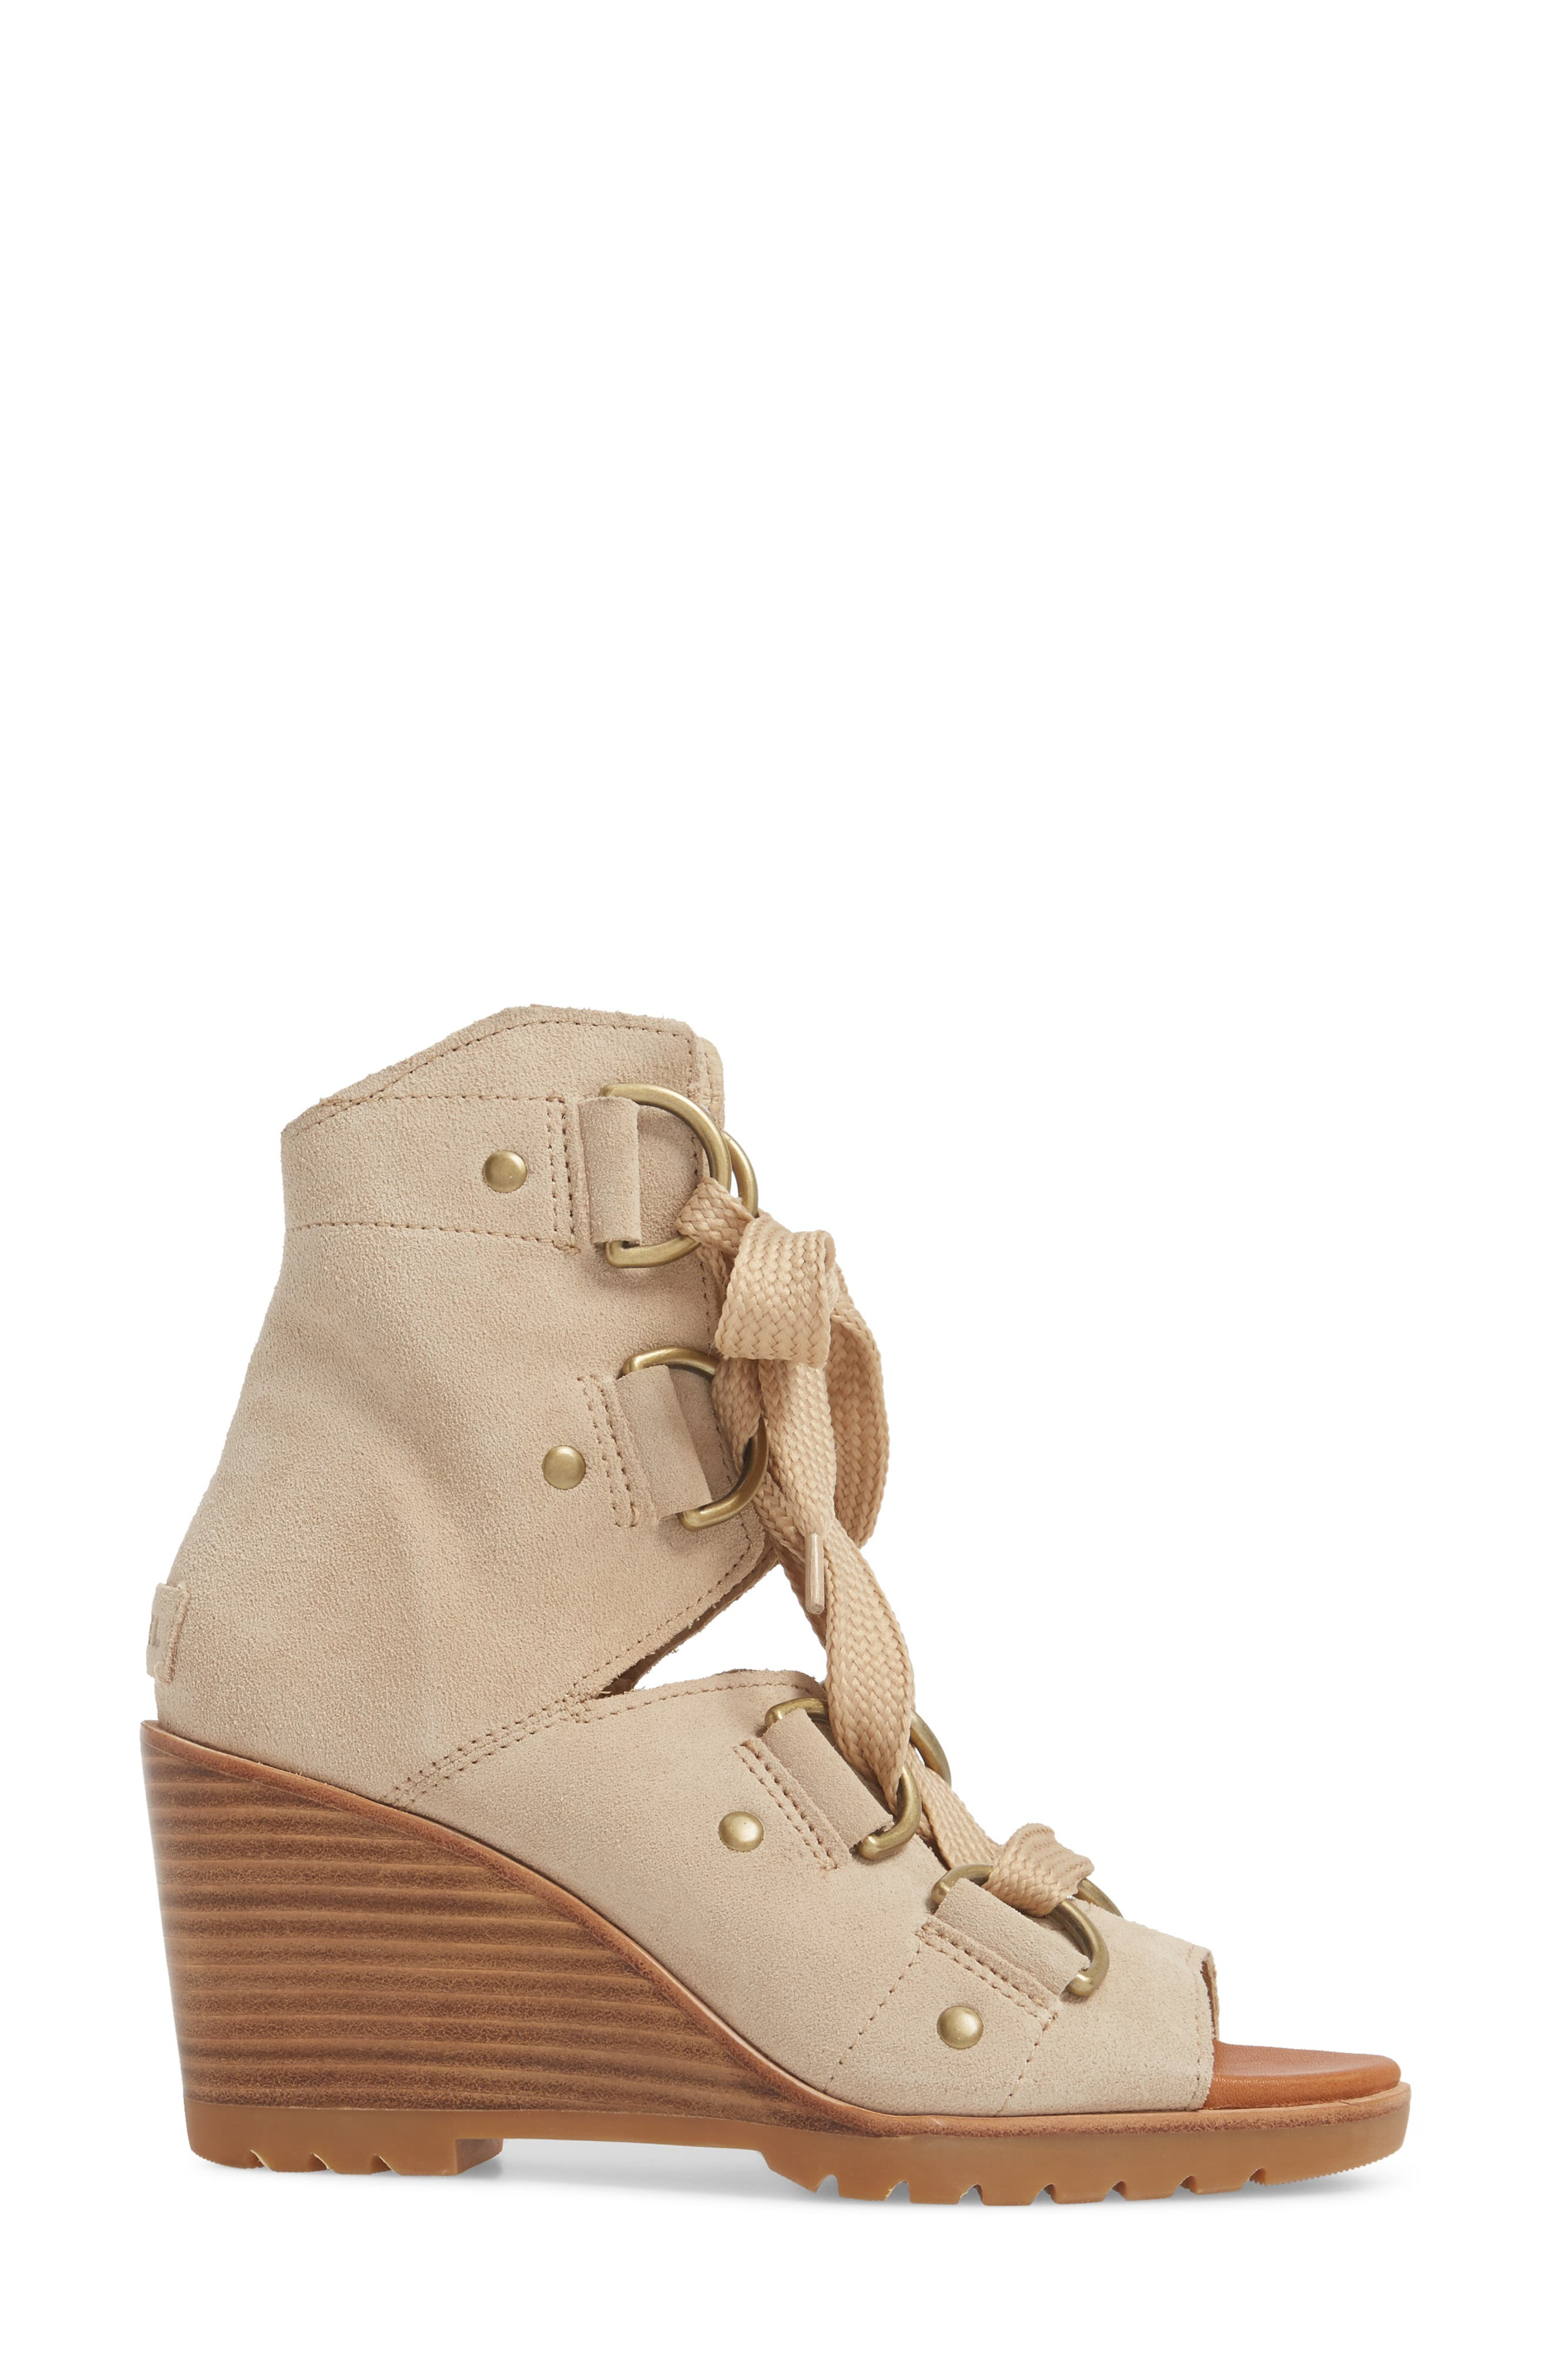 After Hours Wedge Bootie,                             Alternate thumbnail 3, color,                             Oatmeal